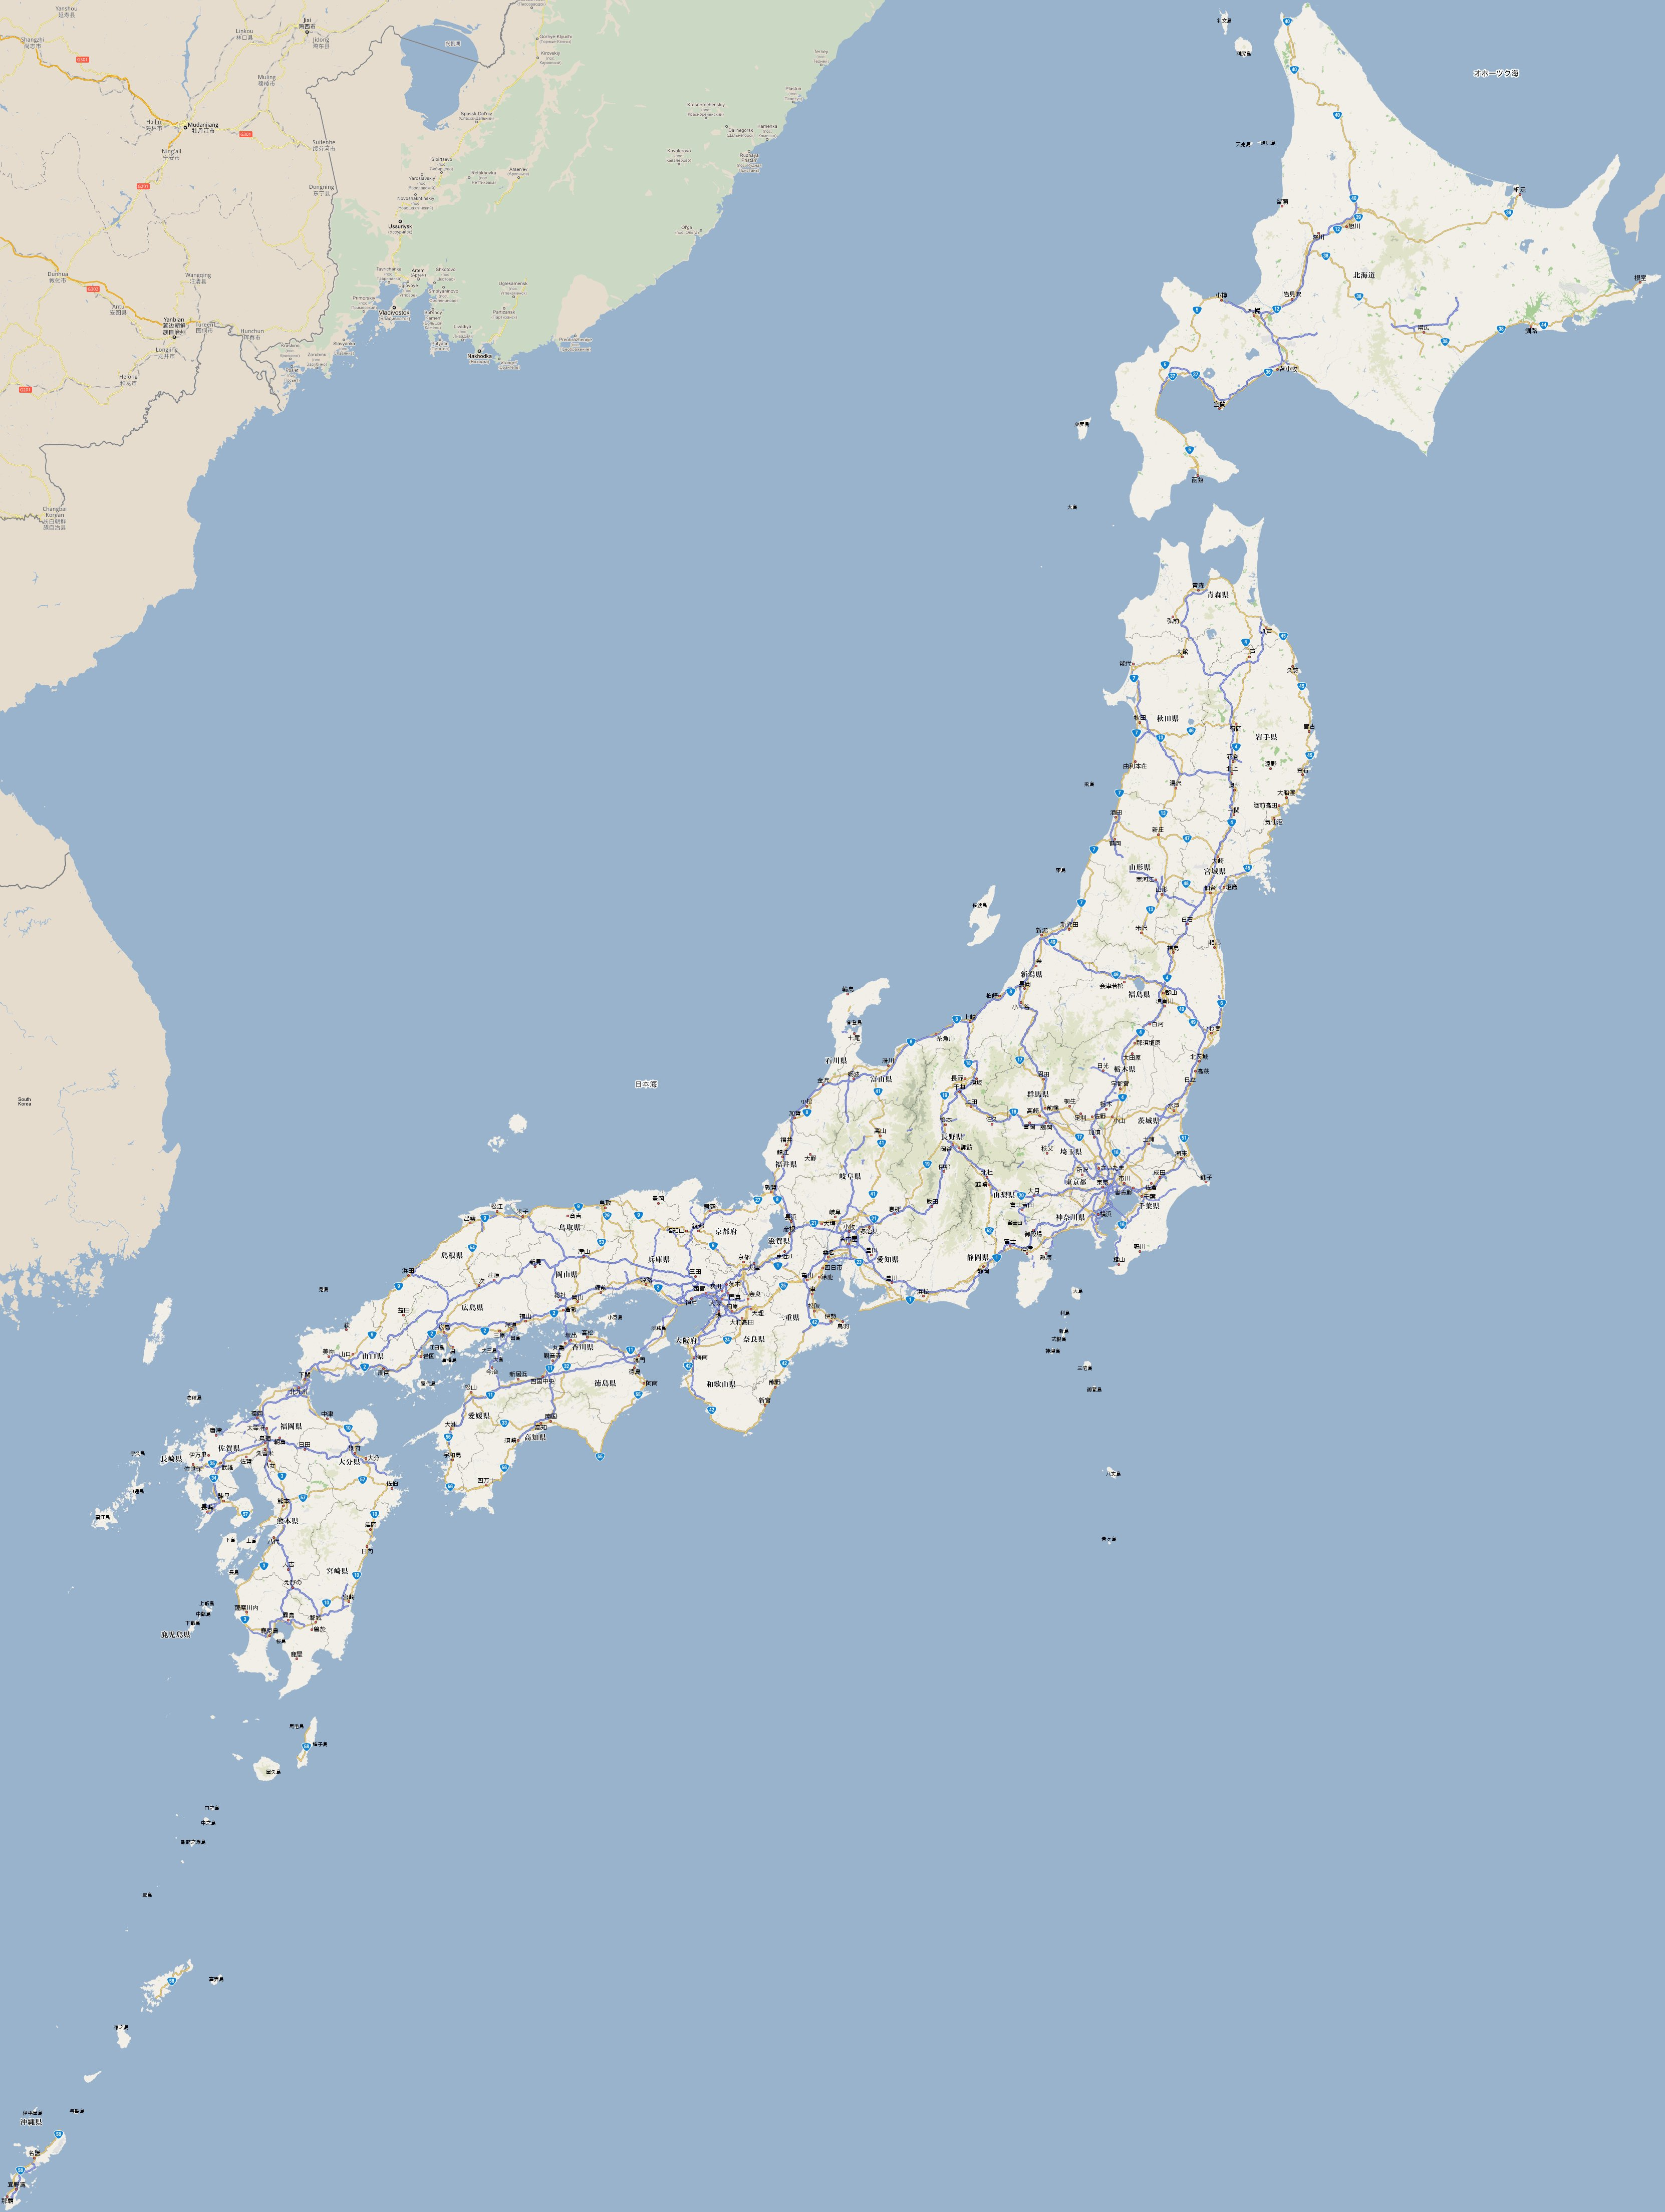 Footiemap japan 2018 map of top tier japanese football footiemap japan 2018 map of top tier japanese football club stadiums gumiabroncs Gallery